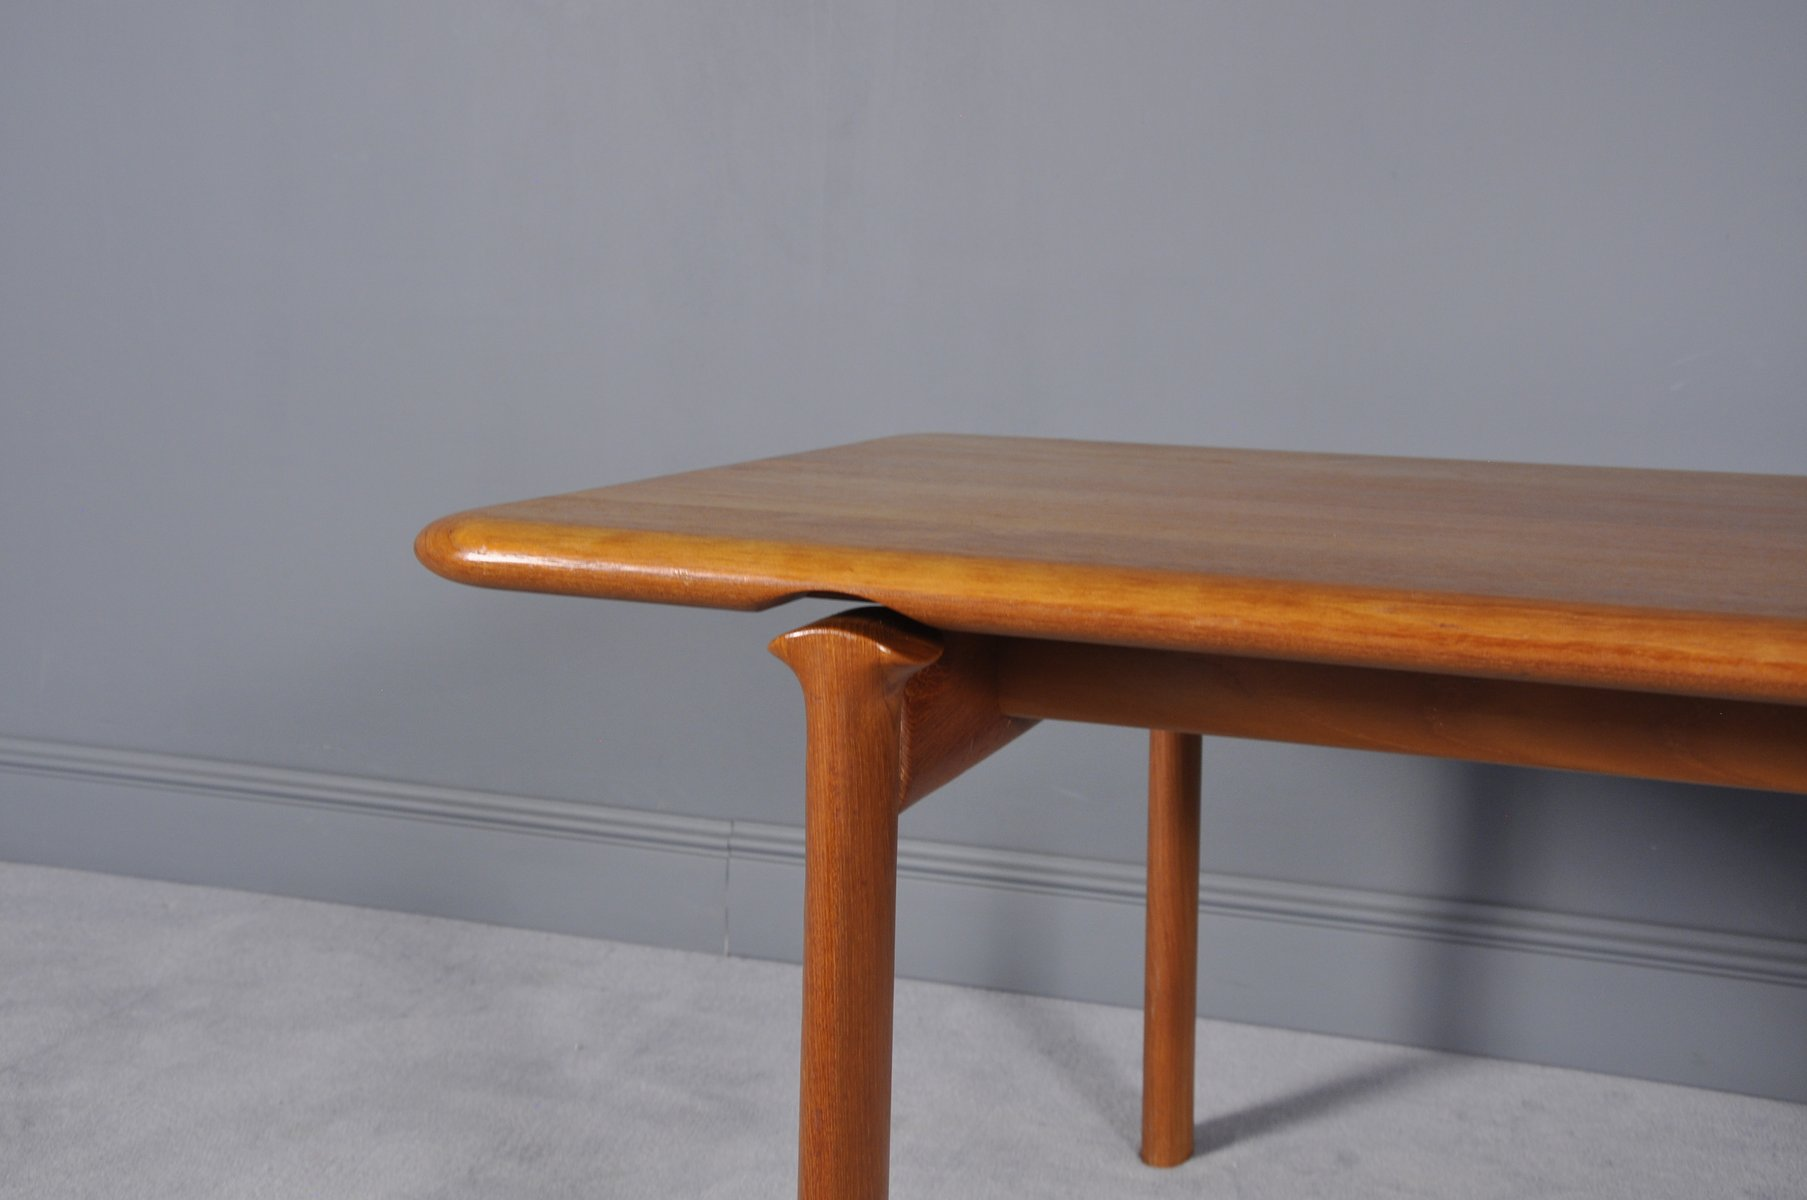 Danish Teak Coffee Table From Komfort 1970s For Sale At Pamono